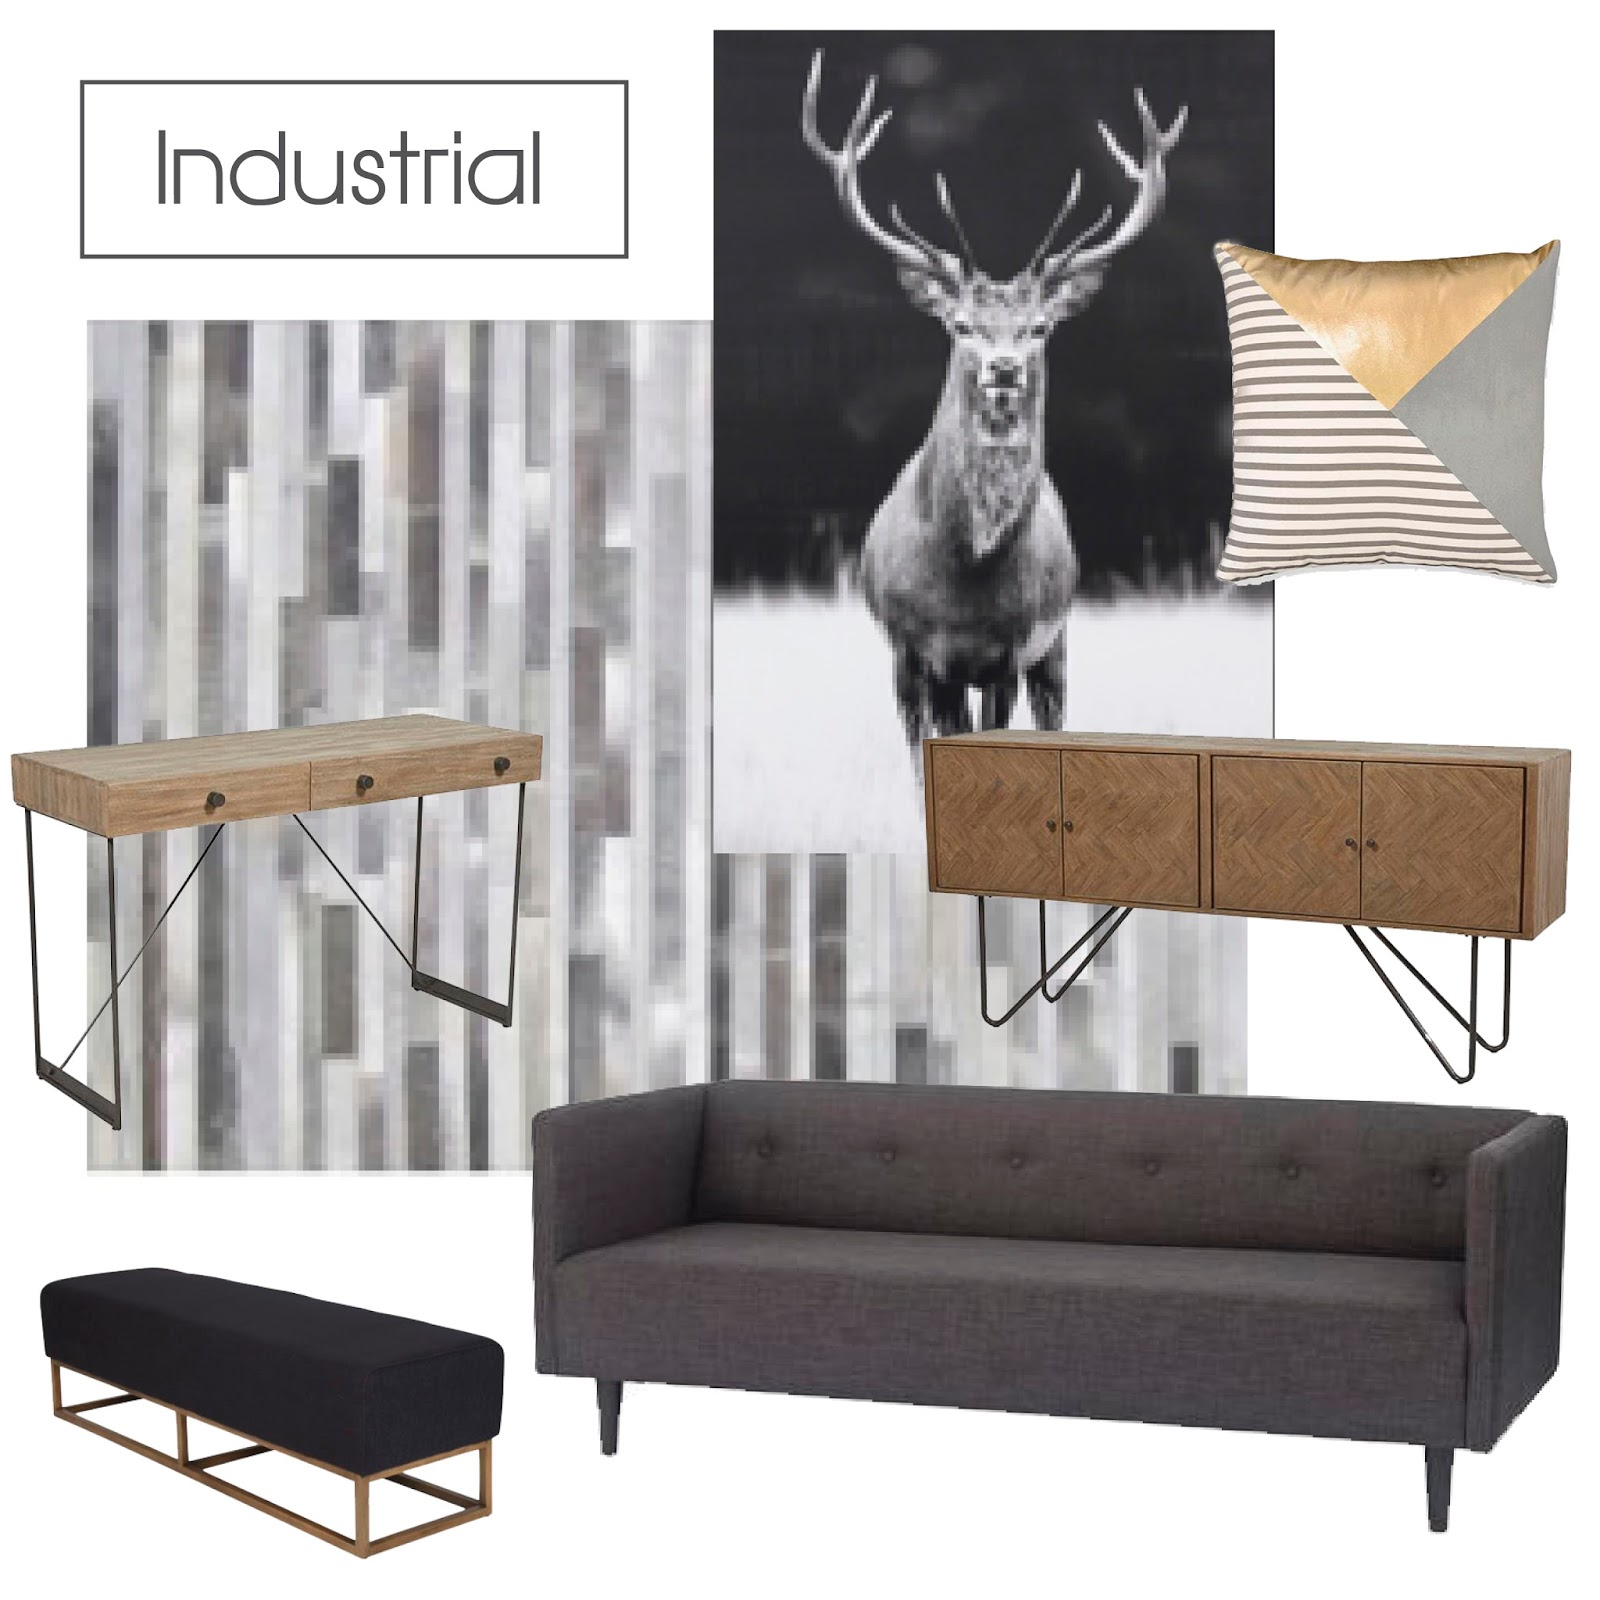 What Style Are You Interior Design Can Be Described As A Warehouse Look That Showcases Neutral Tones And Exposes Structural